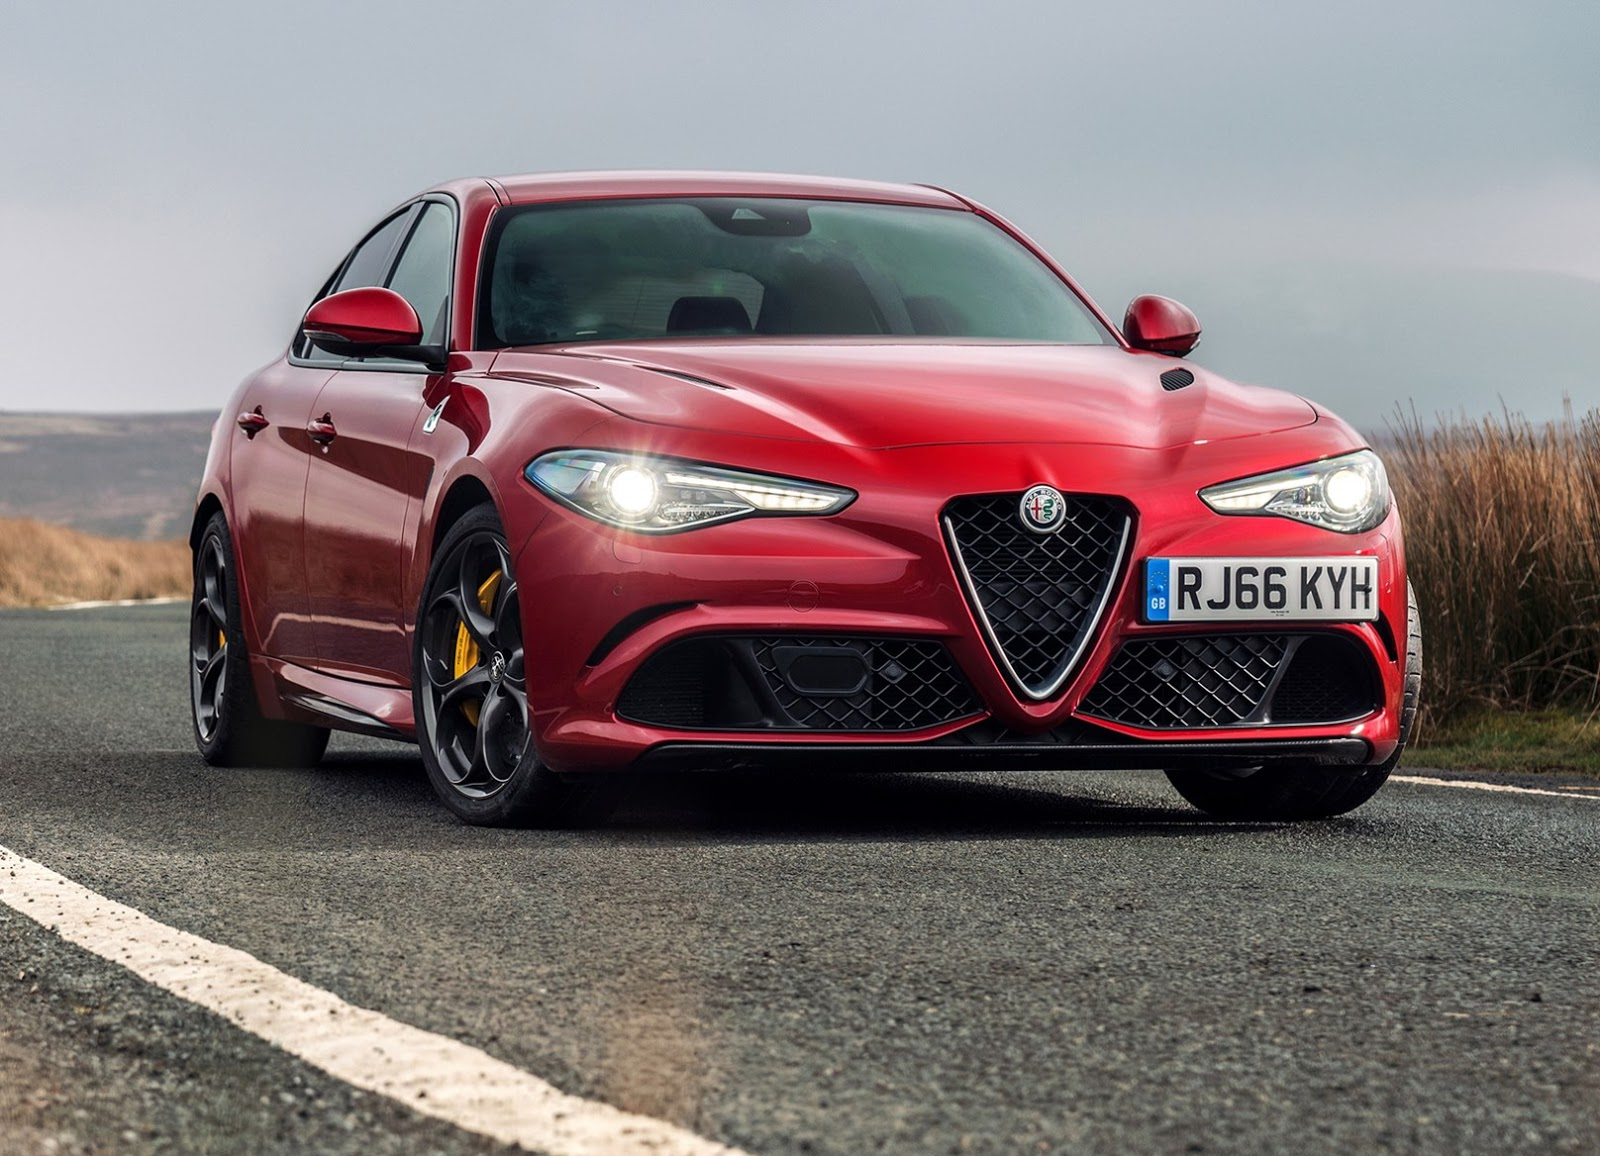 alfa romeo giulia coupe to pack 641bhp with f1 hybrid tech. Black Bedroom Furniture Sets. Home Design Ideas